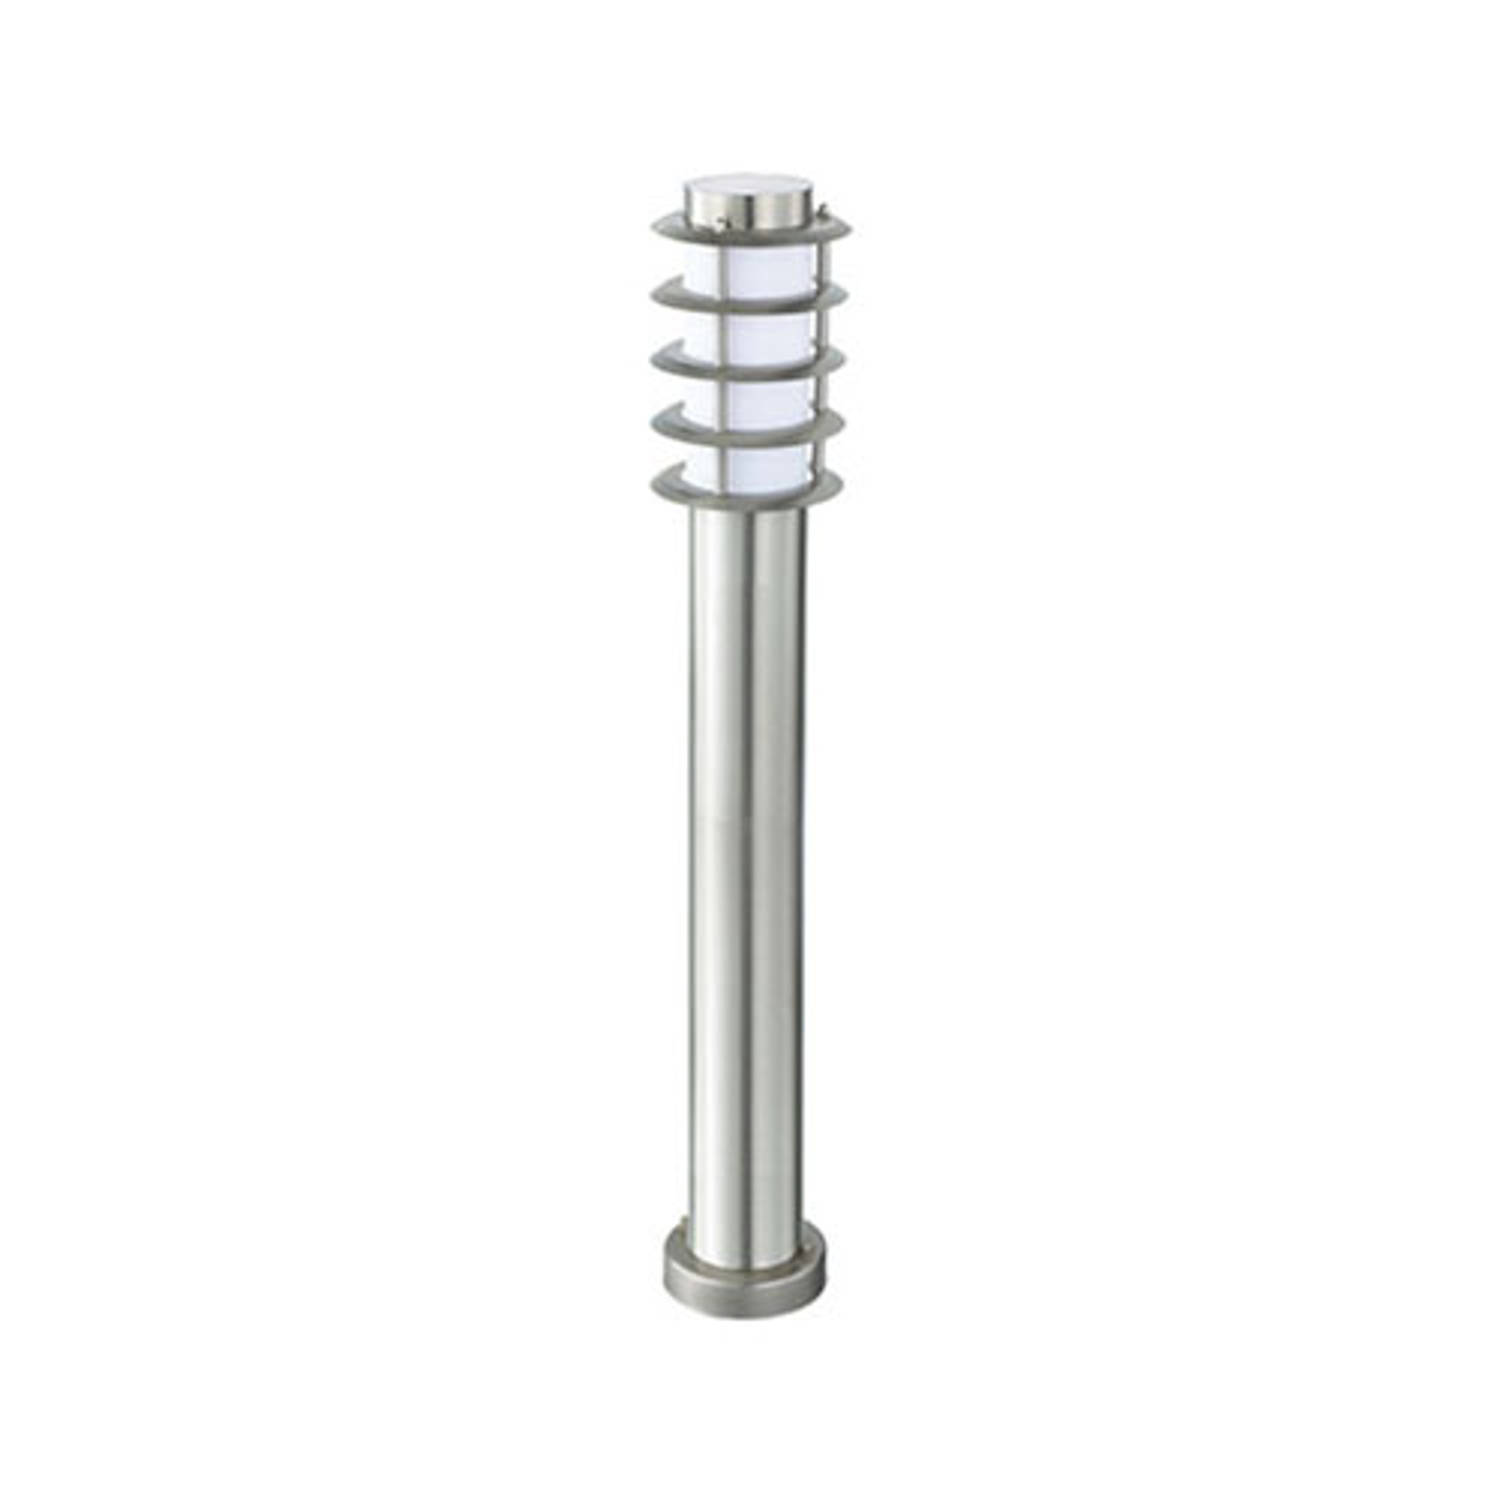 Led Tuinverlichting Buitenlamp Nalid 4 Staand Rvs E27 Rond